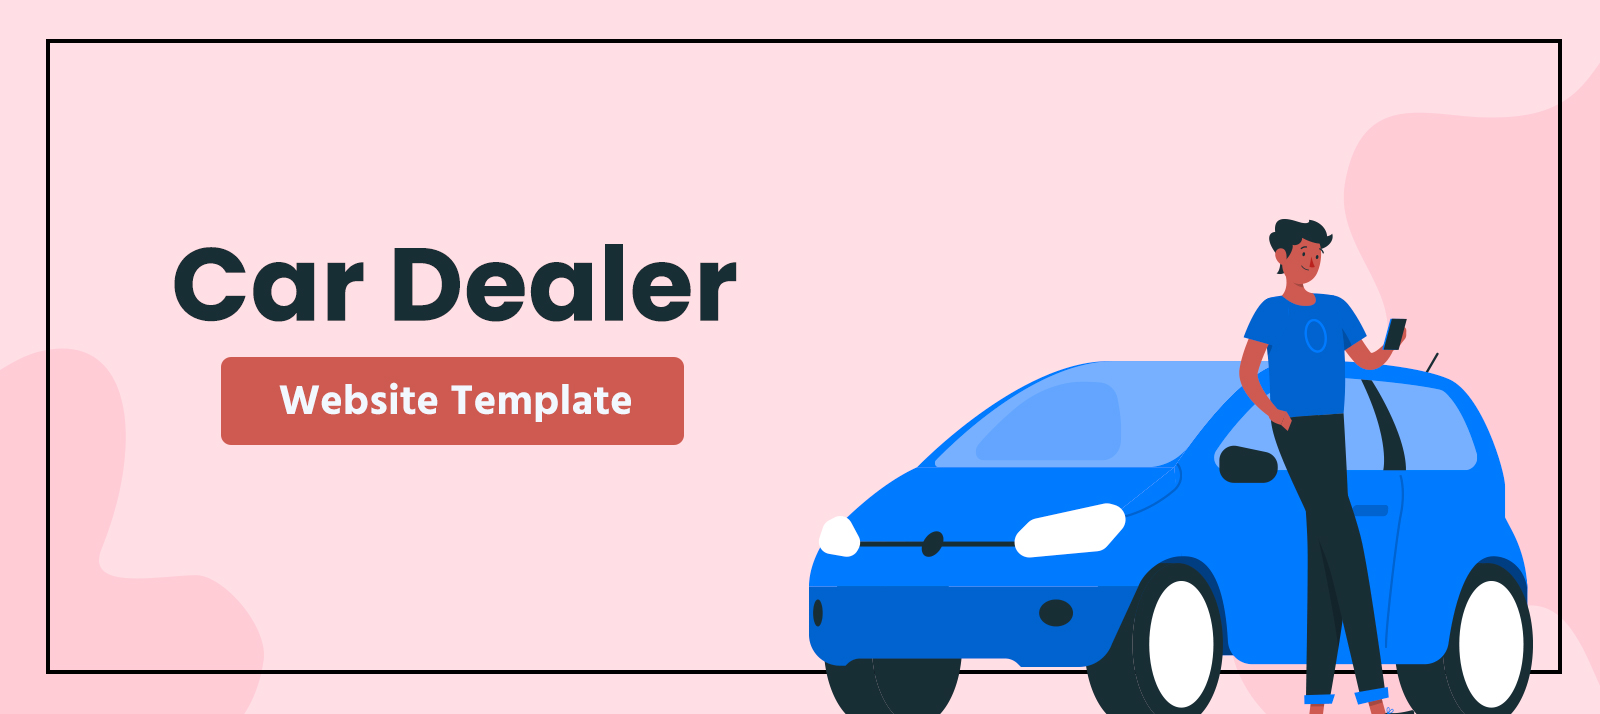 New Free and Premium Car Dealer Website Template That You Can Use in 2020